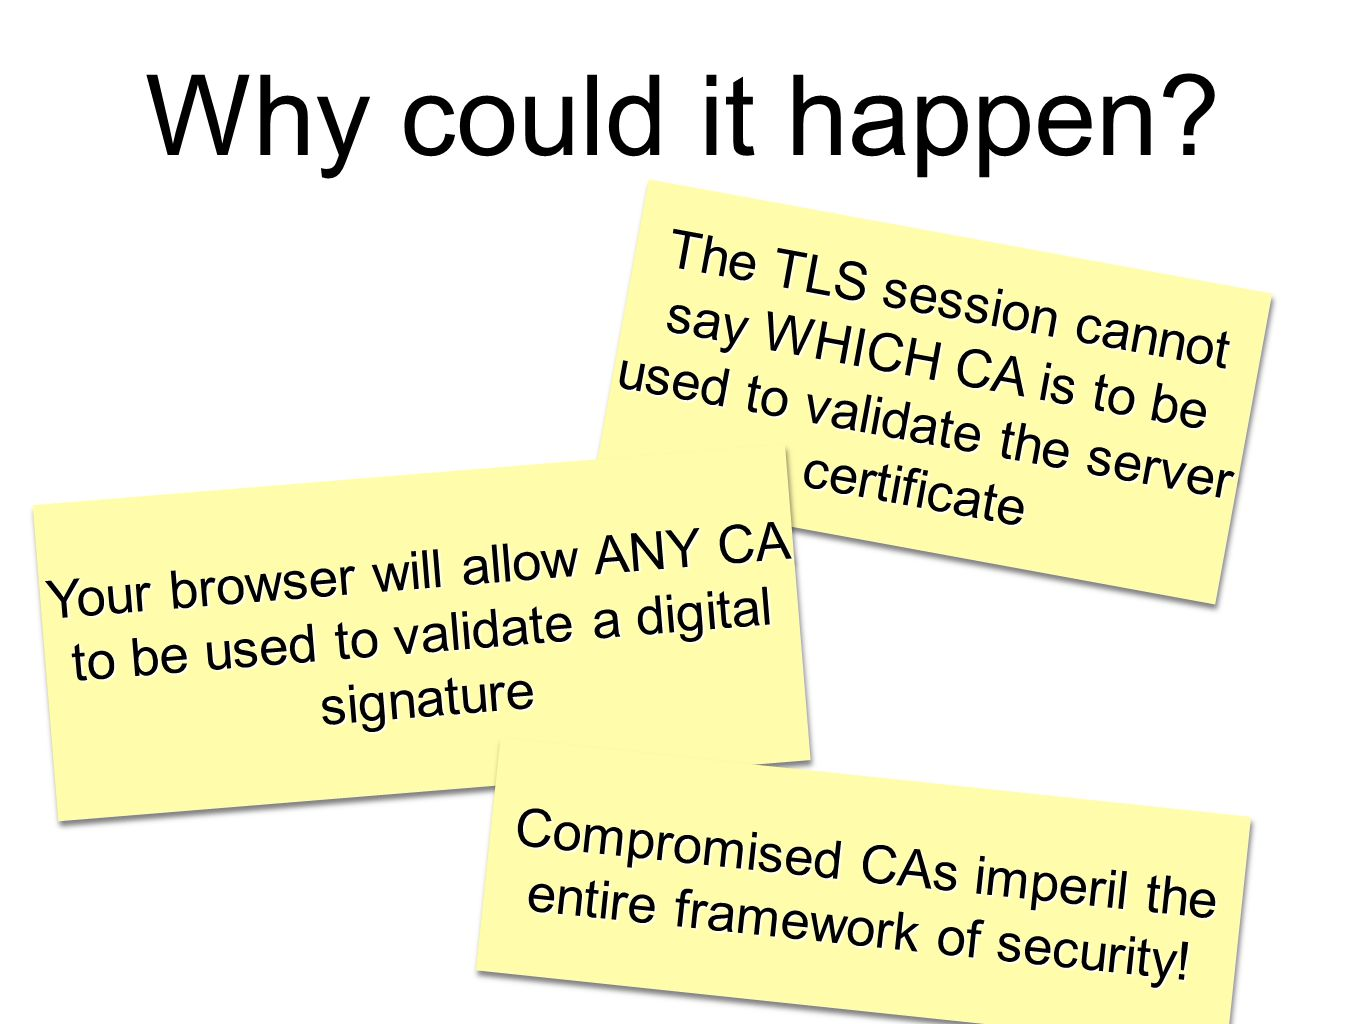 Why could it happen? The TLS session cannot say WHICH CA is to be used to validate the server certificate Your browser will allow ANY CA to be used to